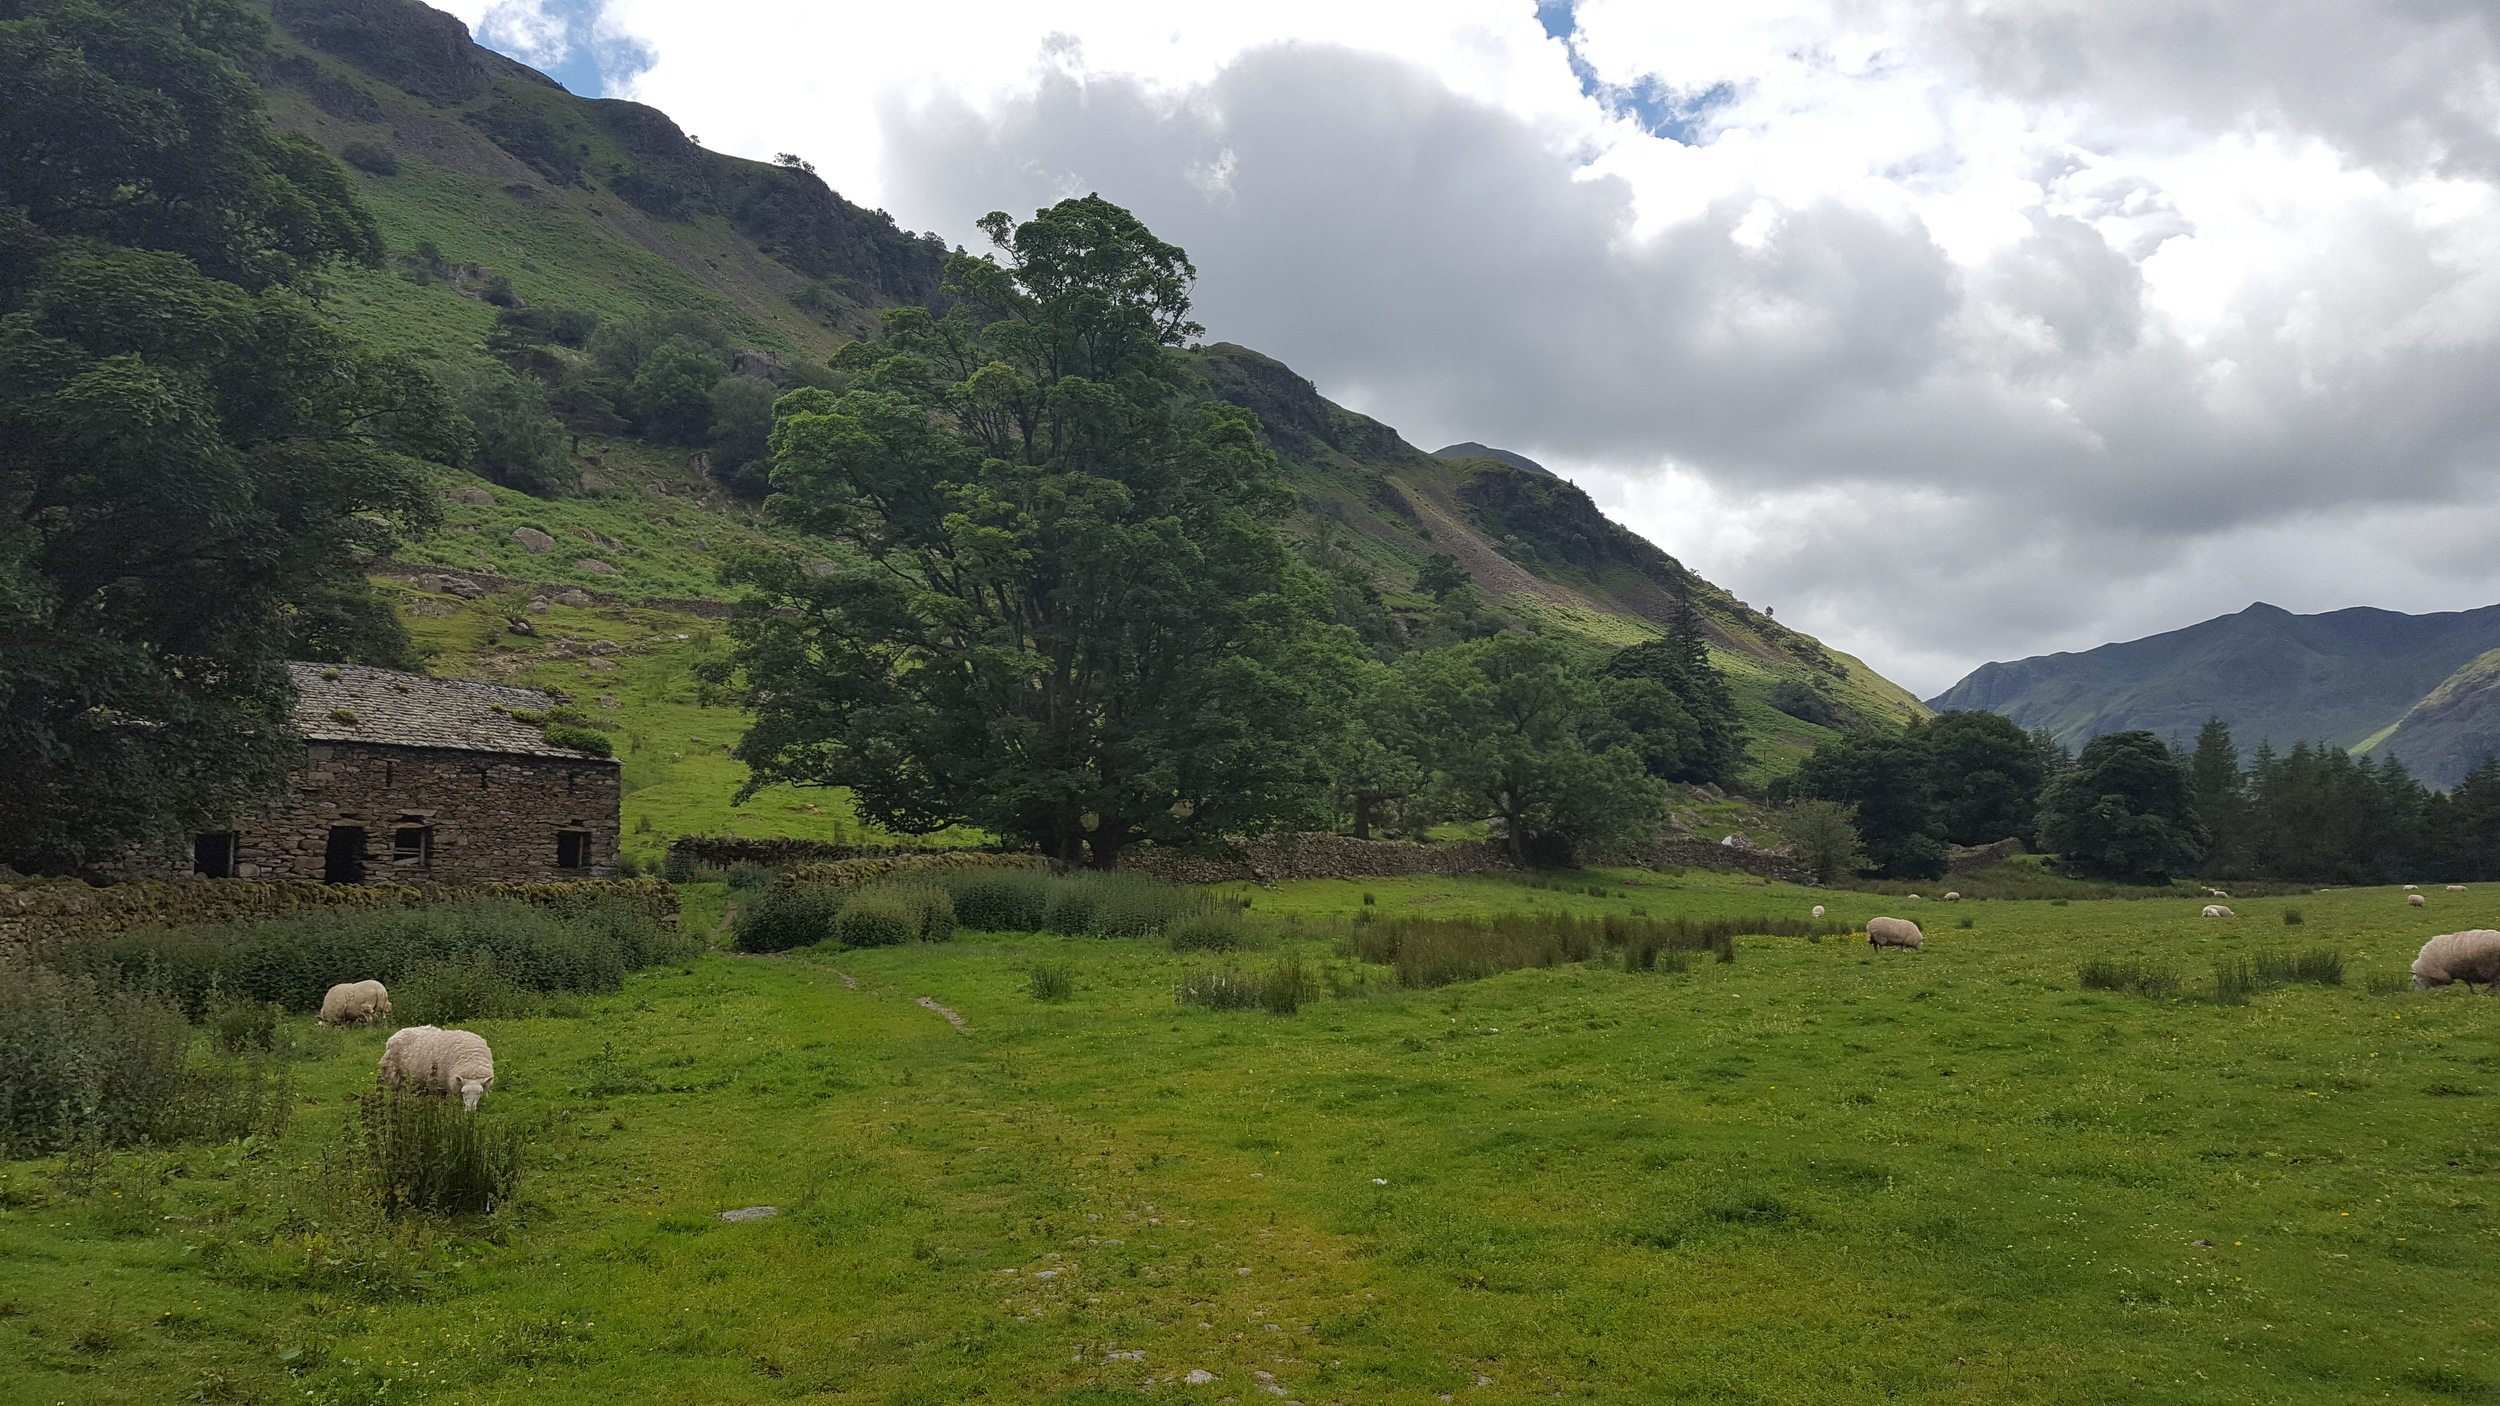 On the road from Grasmere to Patterdale